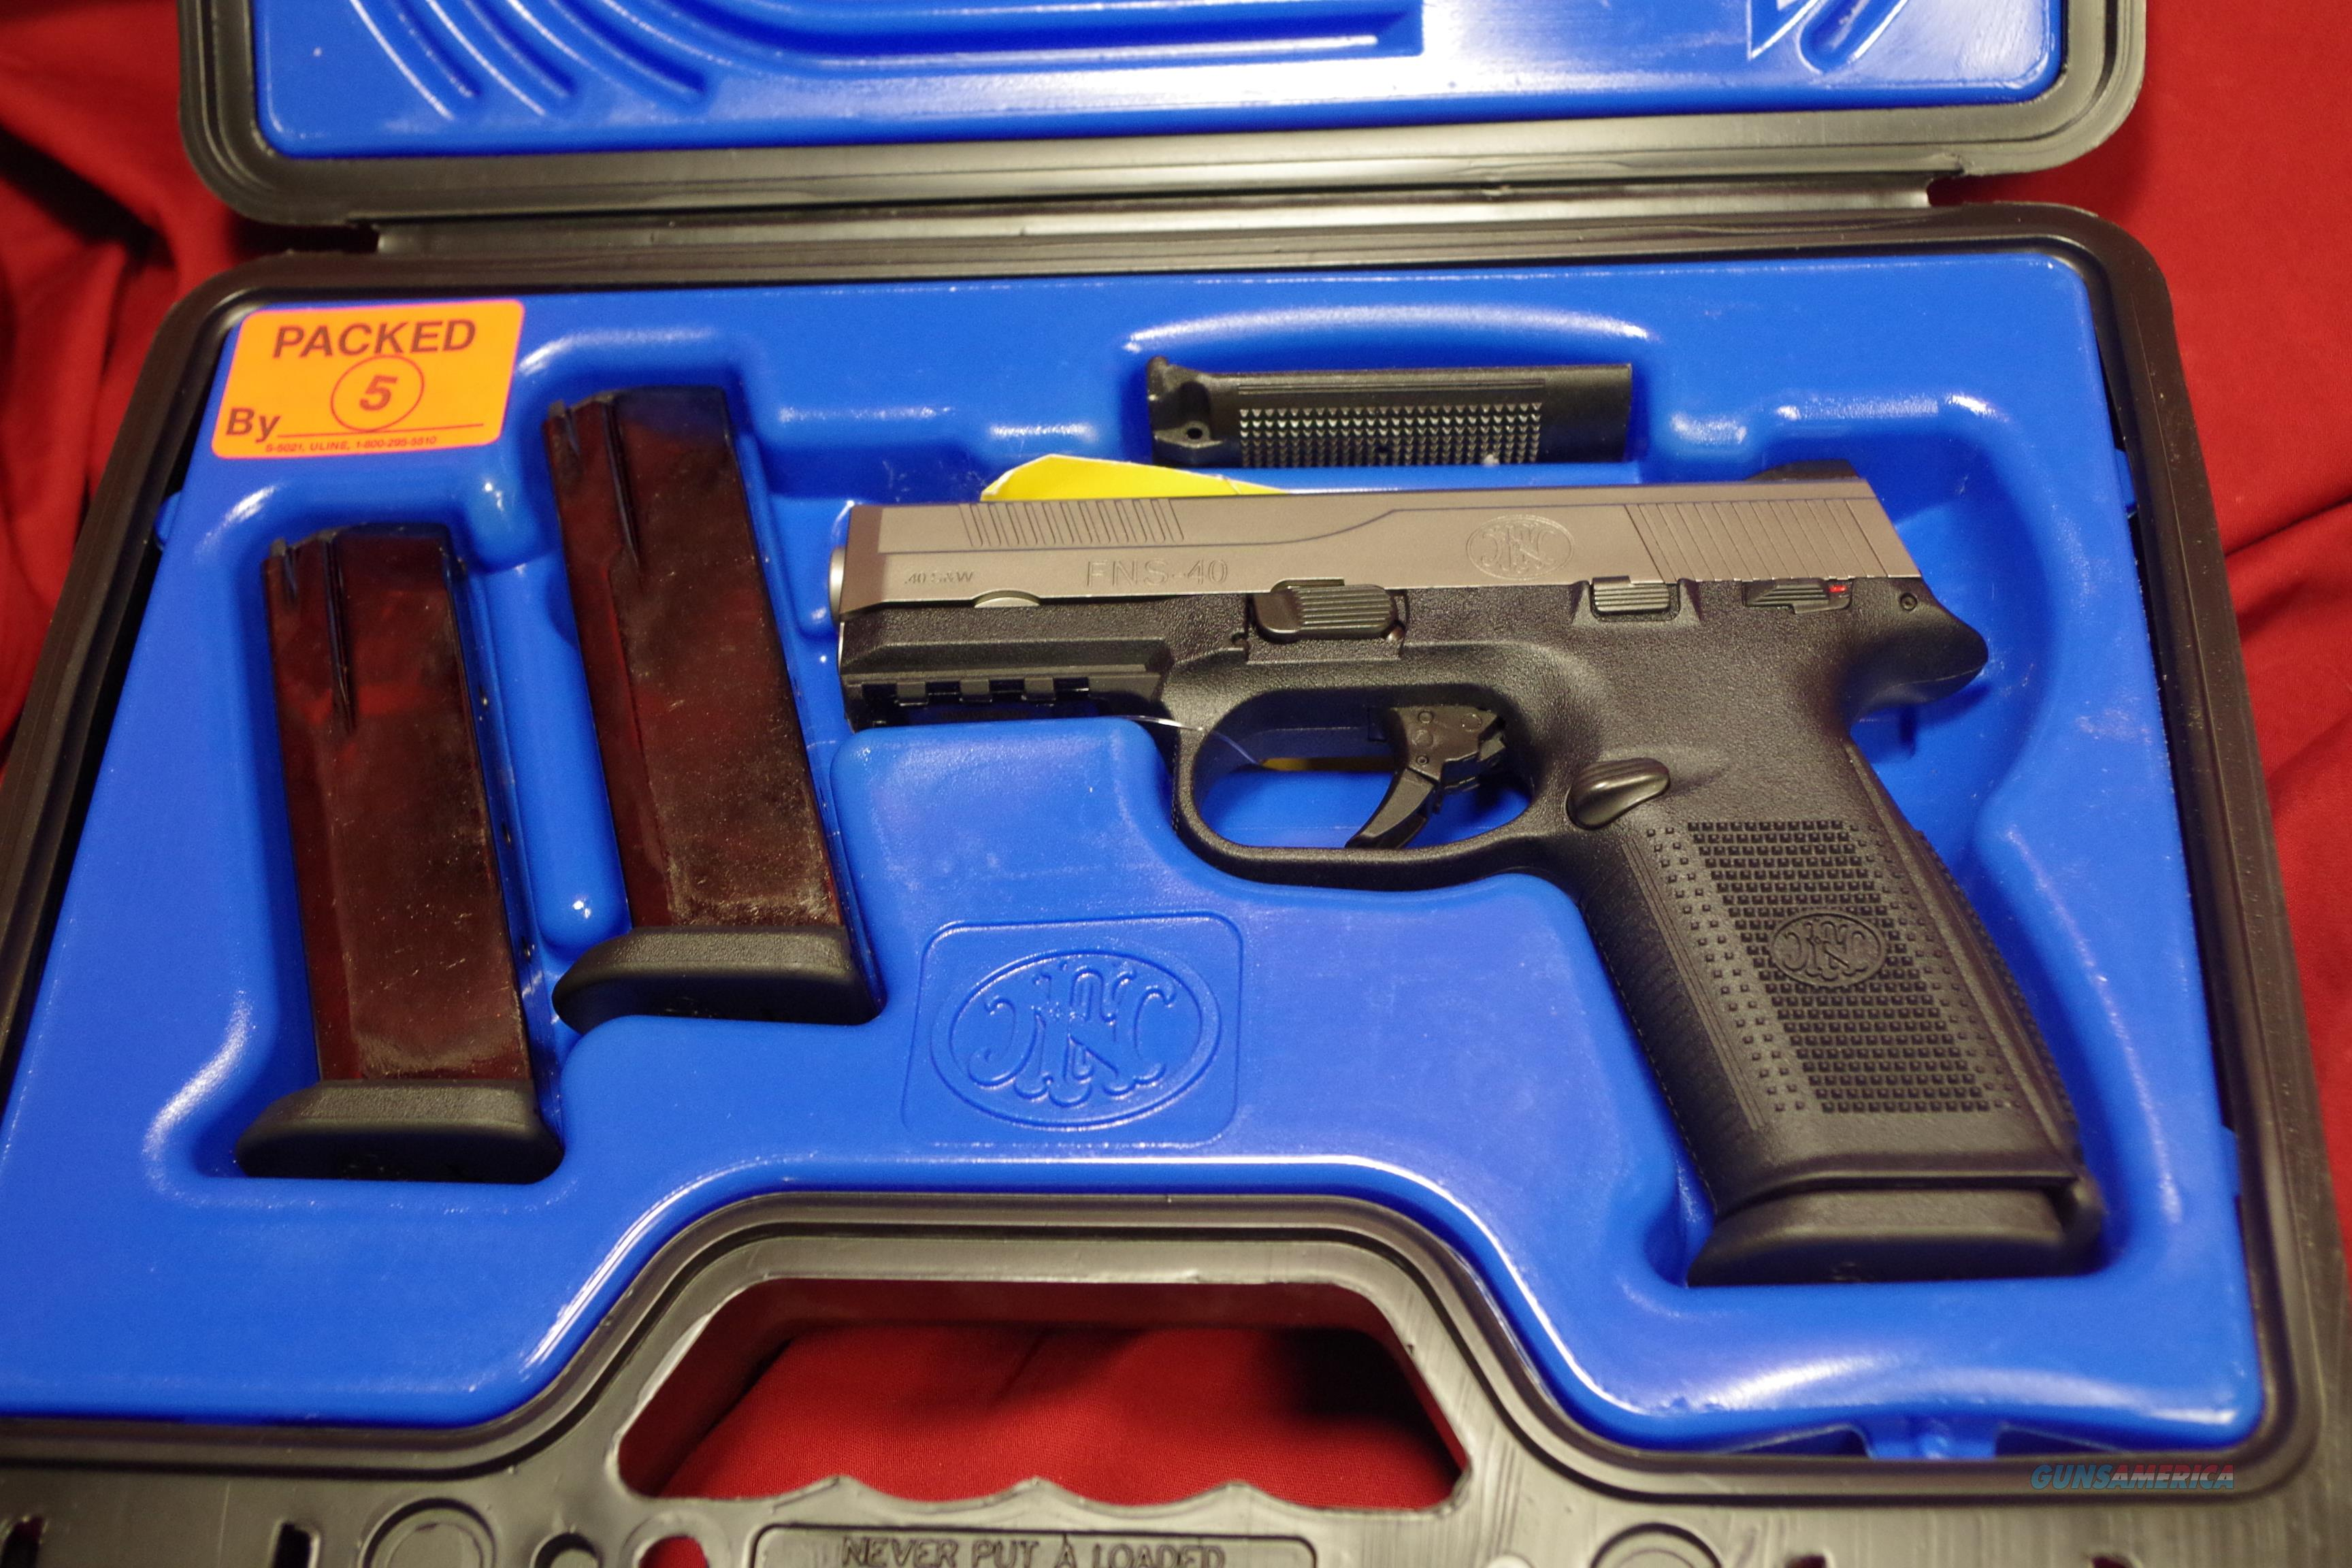 FNH USA FNS-40  Guns > Pistols > FNH - Fabrique Nationale (FN) Pistols > FNS